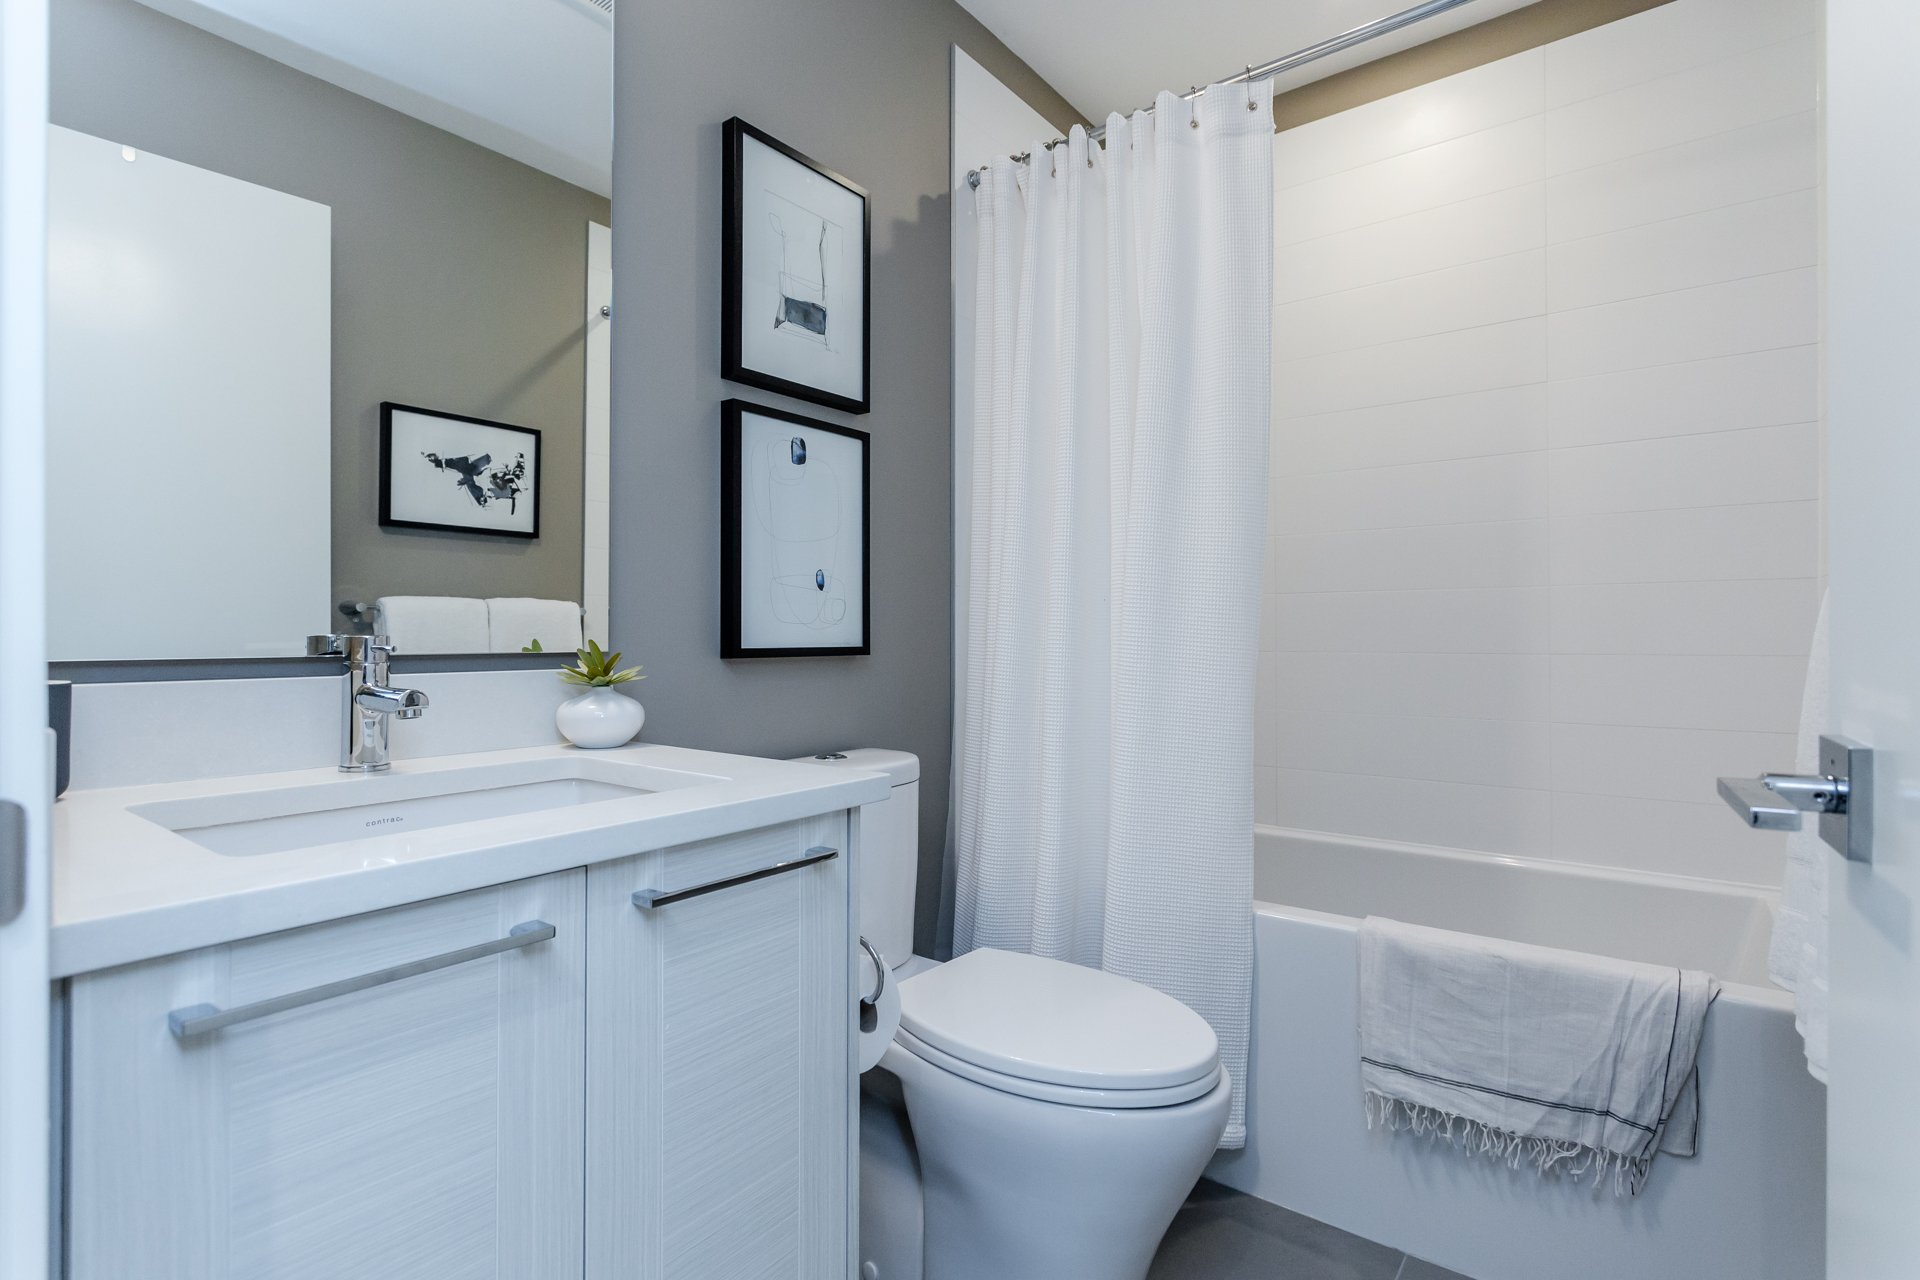 """Photo 32: Photos: 8 8217 204B Street in Langley: Willoughby Heights Townhouse for sale in """"EVERLY GREEN"""" : MLS®# R2236678"""